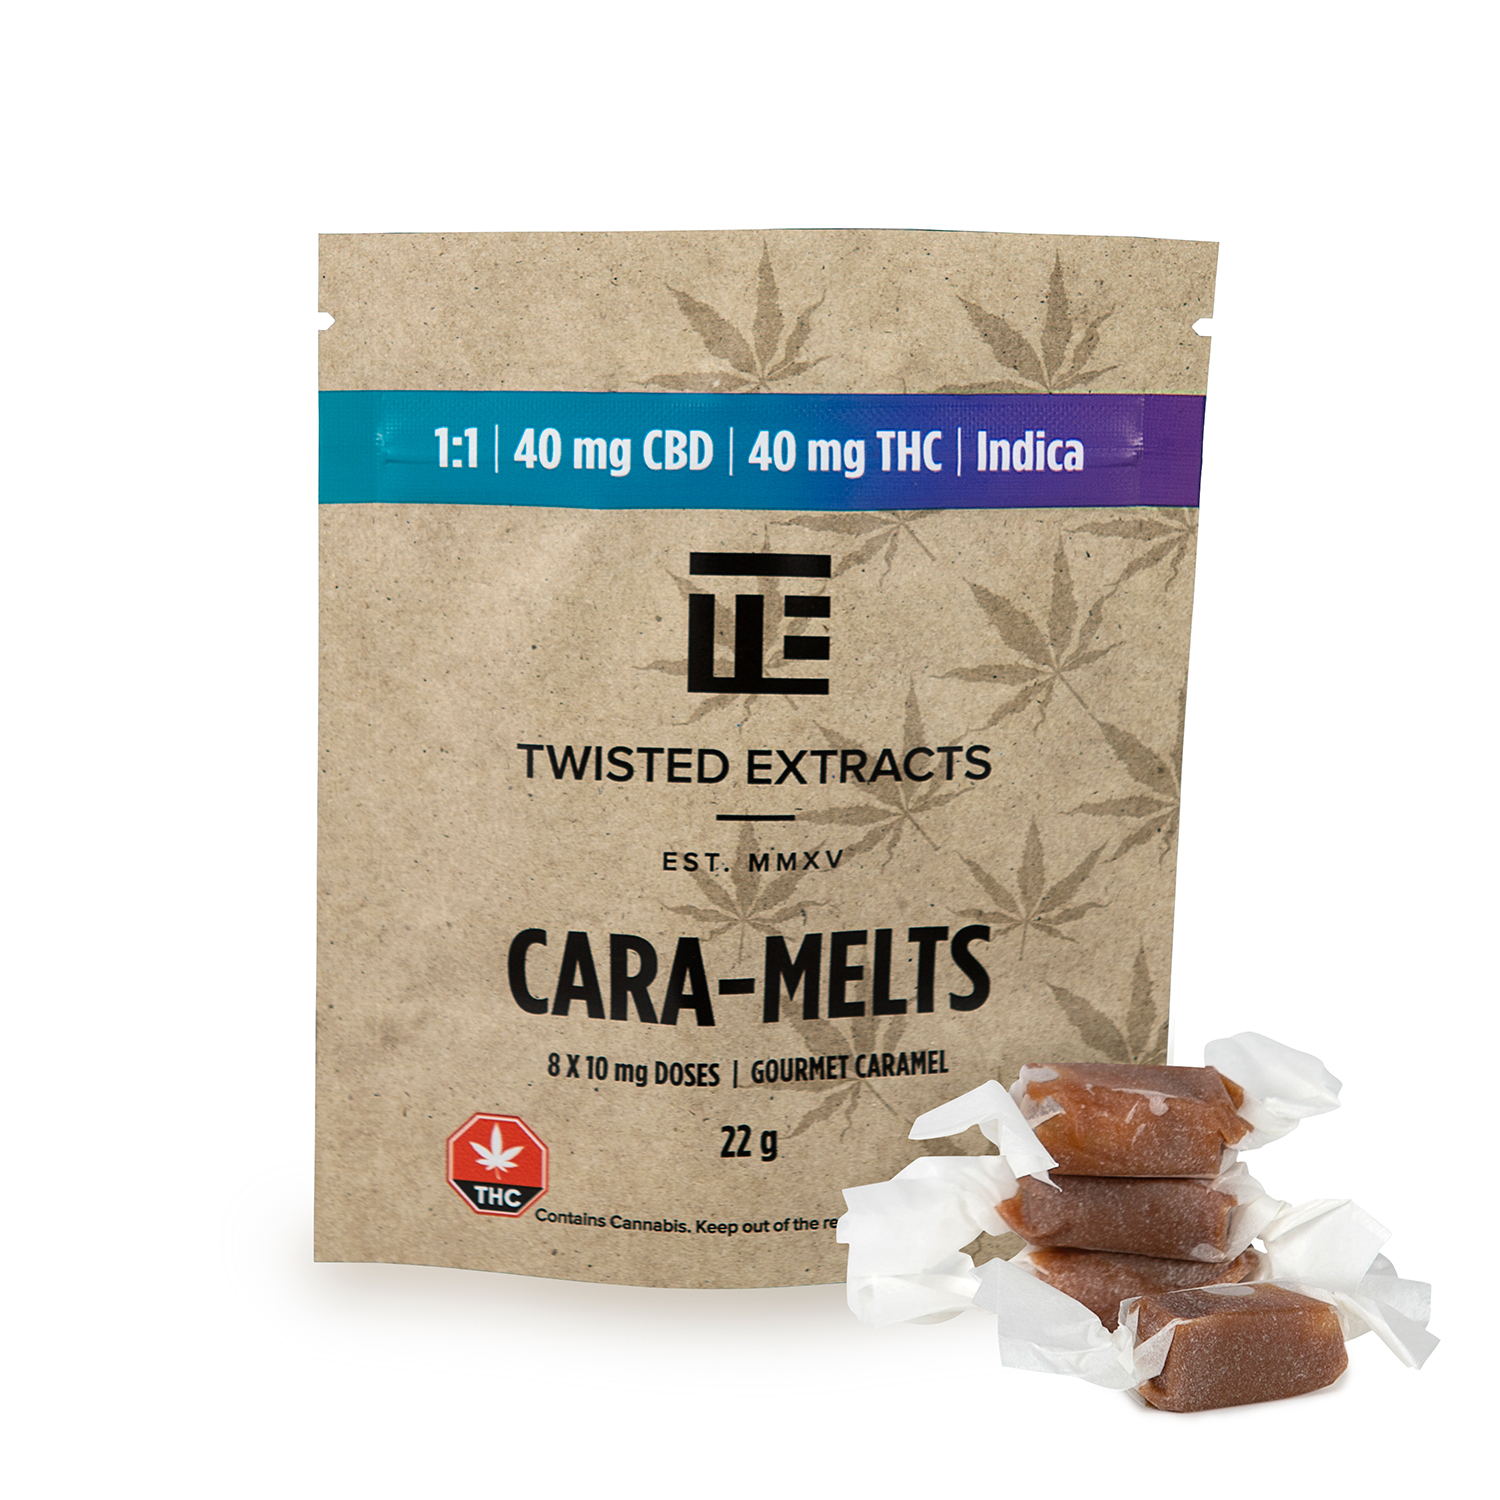 Twisted Extracts - Cara-Melts - 1:1 - Indica